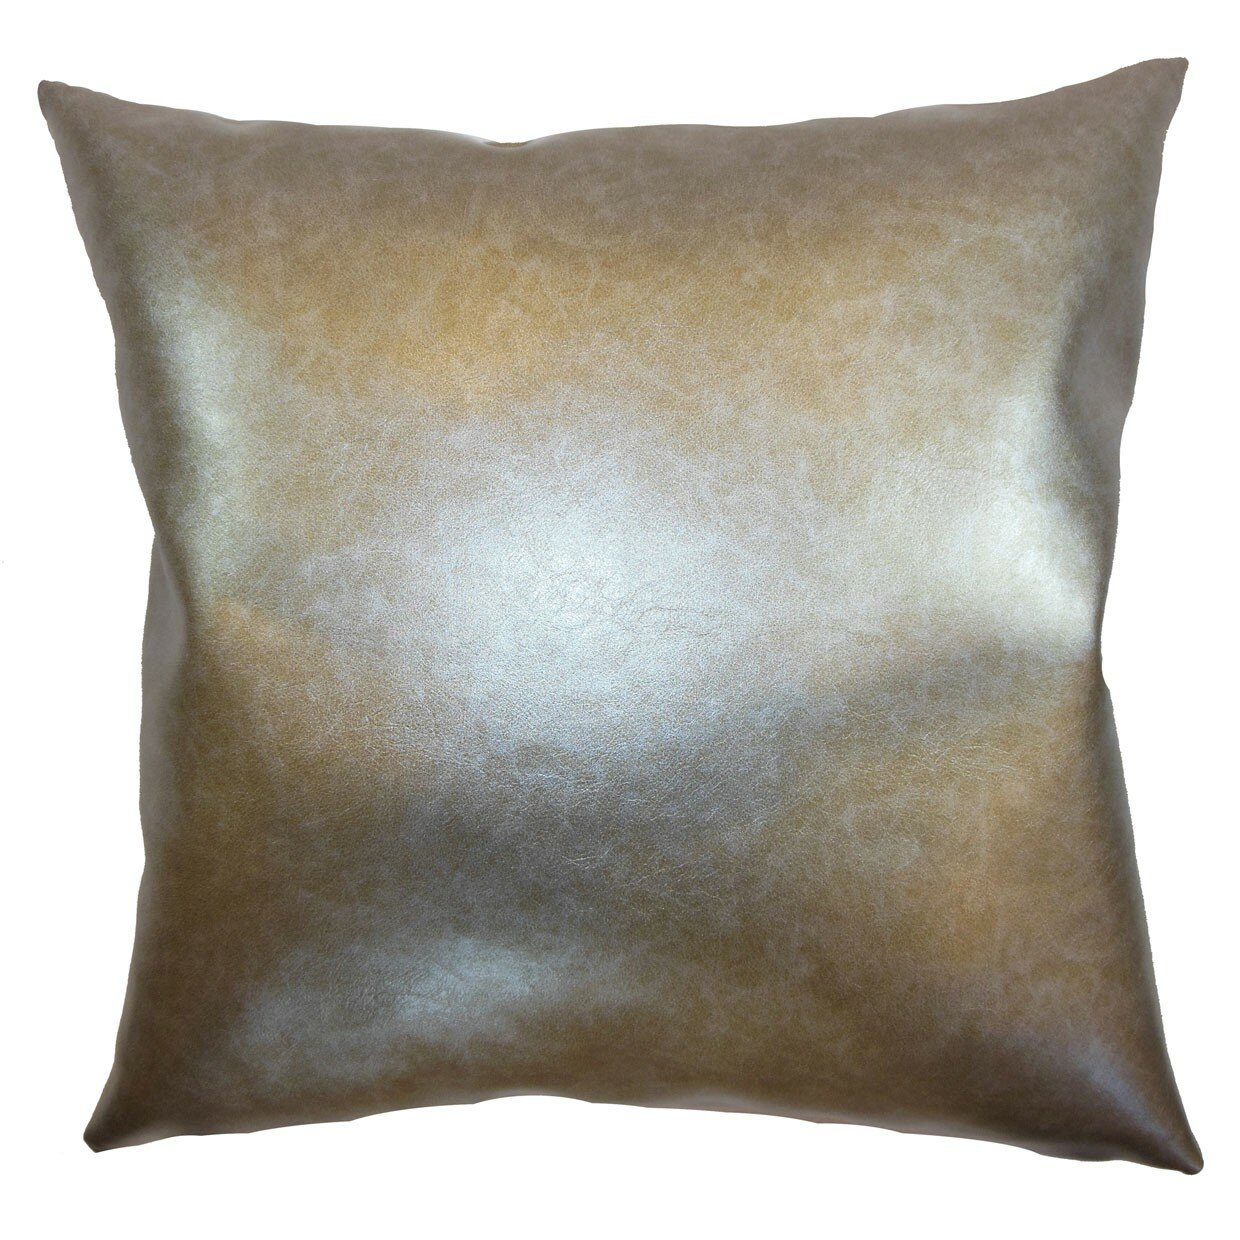 Vinyl Throw Pillows : The Pillow Collection Kamden Vinyl Throw Pillow & Reviews Wayfair.ca